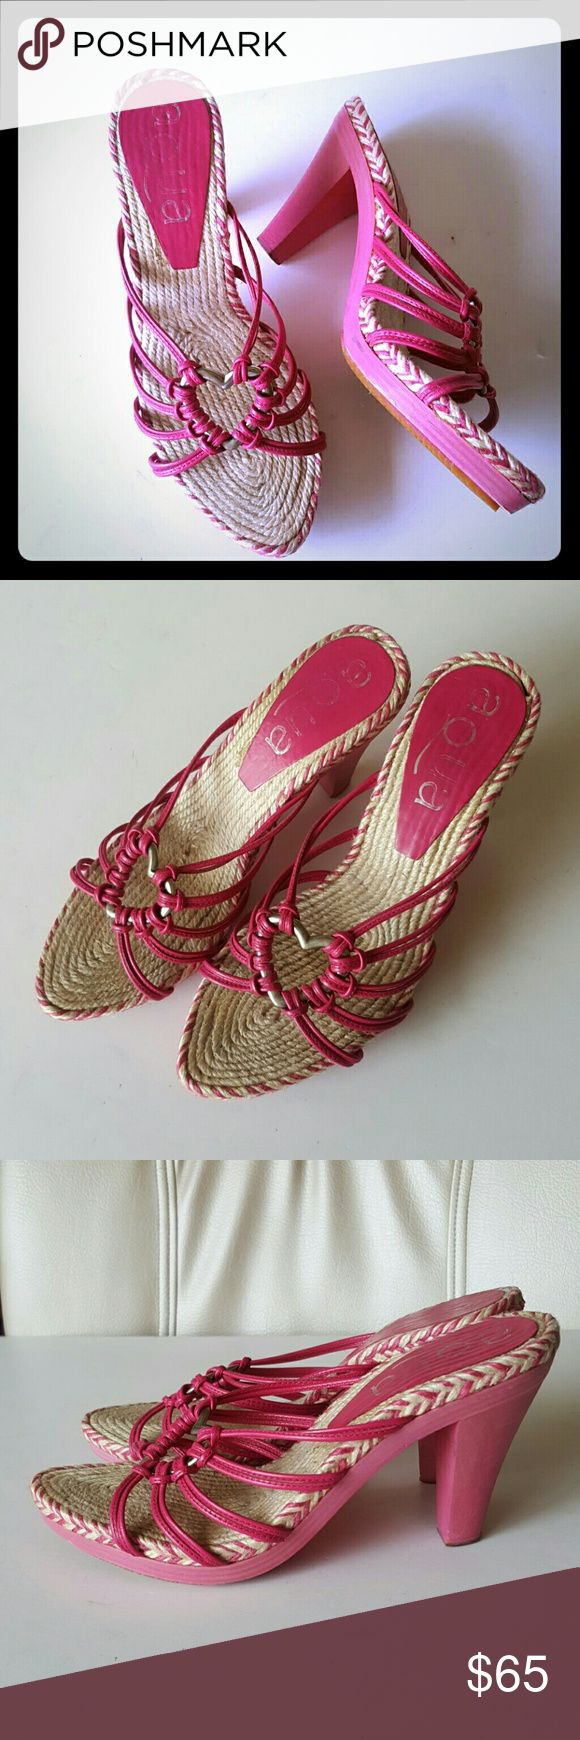 """AQUA Espadrille Wooden Heel Sandals Beautiful pink/hot pink genuine leather, real wood and  wonderful espadrille braided work.  Size Euro 37/US 7. High shine silvertone heart center piece. Great pre-owned condition. Rubber non slip outer bottom soles. 3"""" wooden kitten heels--- Fast ship! Aqua Shoes Espadrilles"""